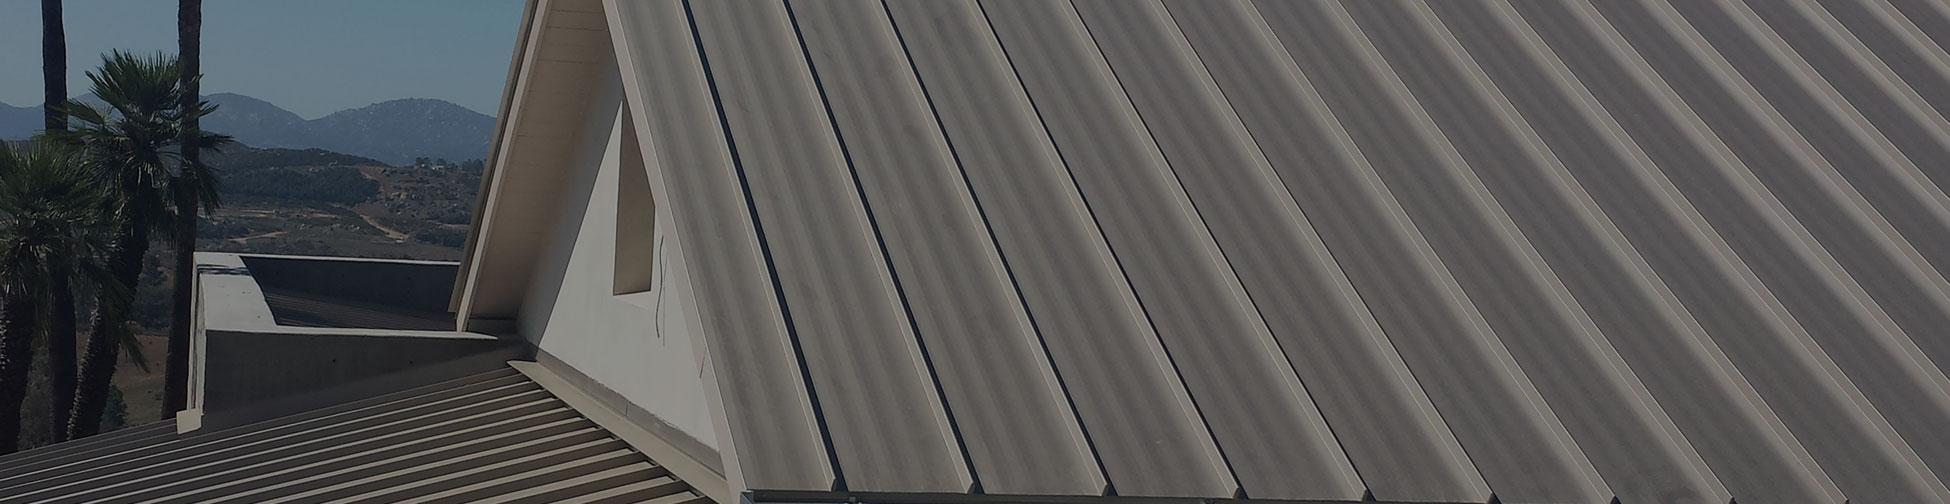 Metal Roof Products By AEP Span